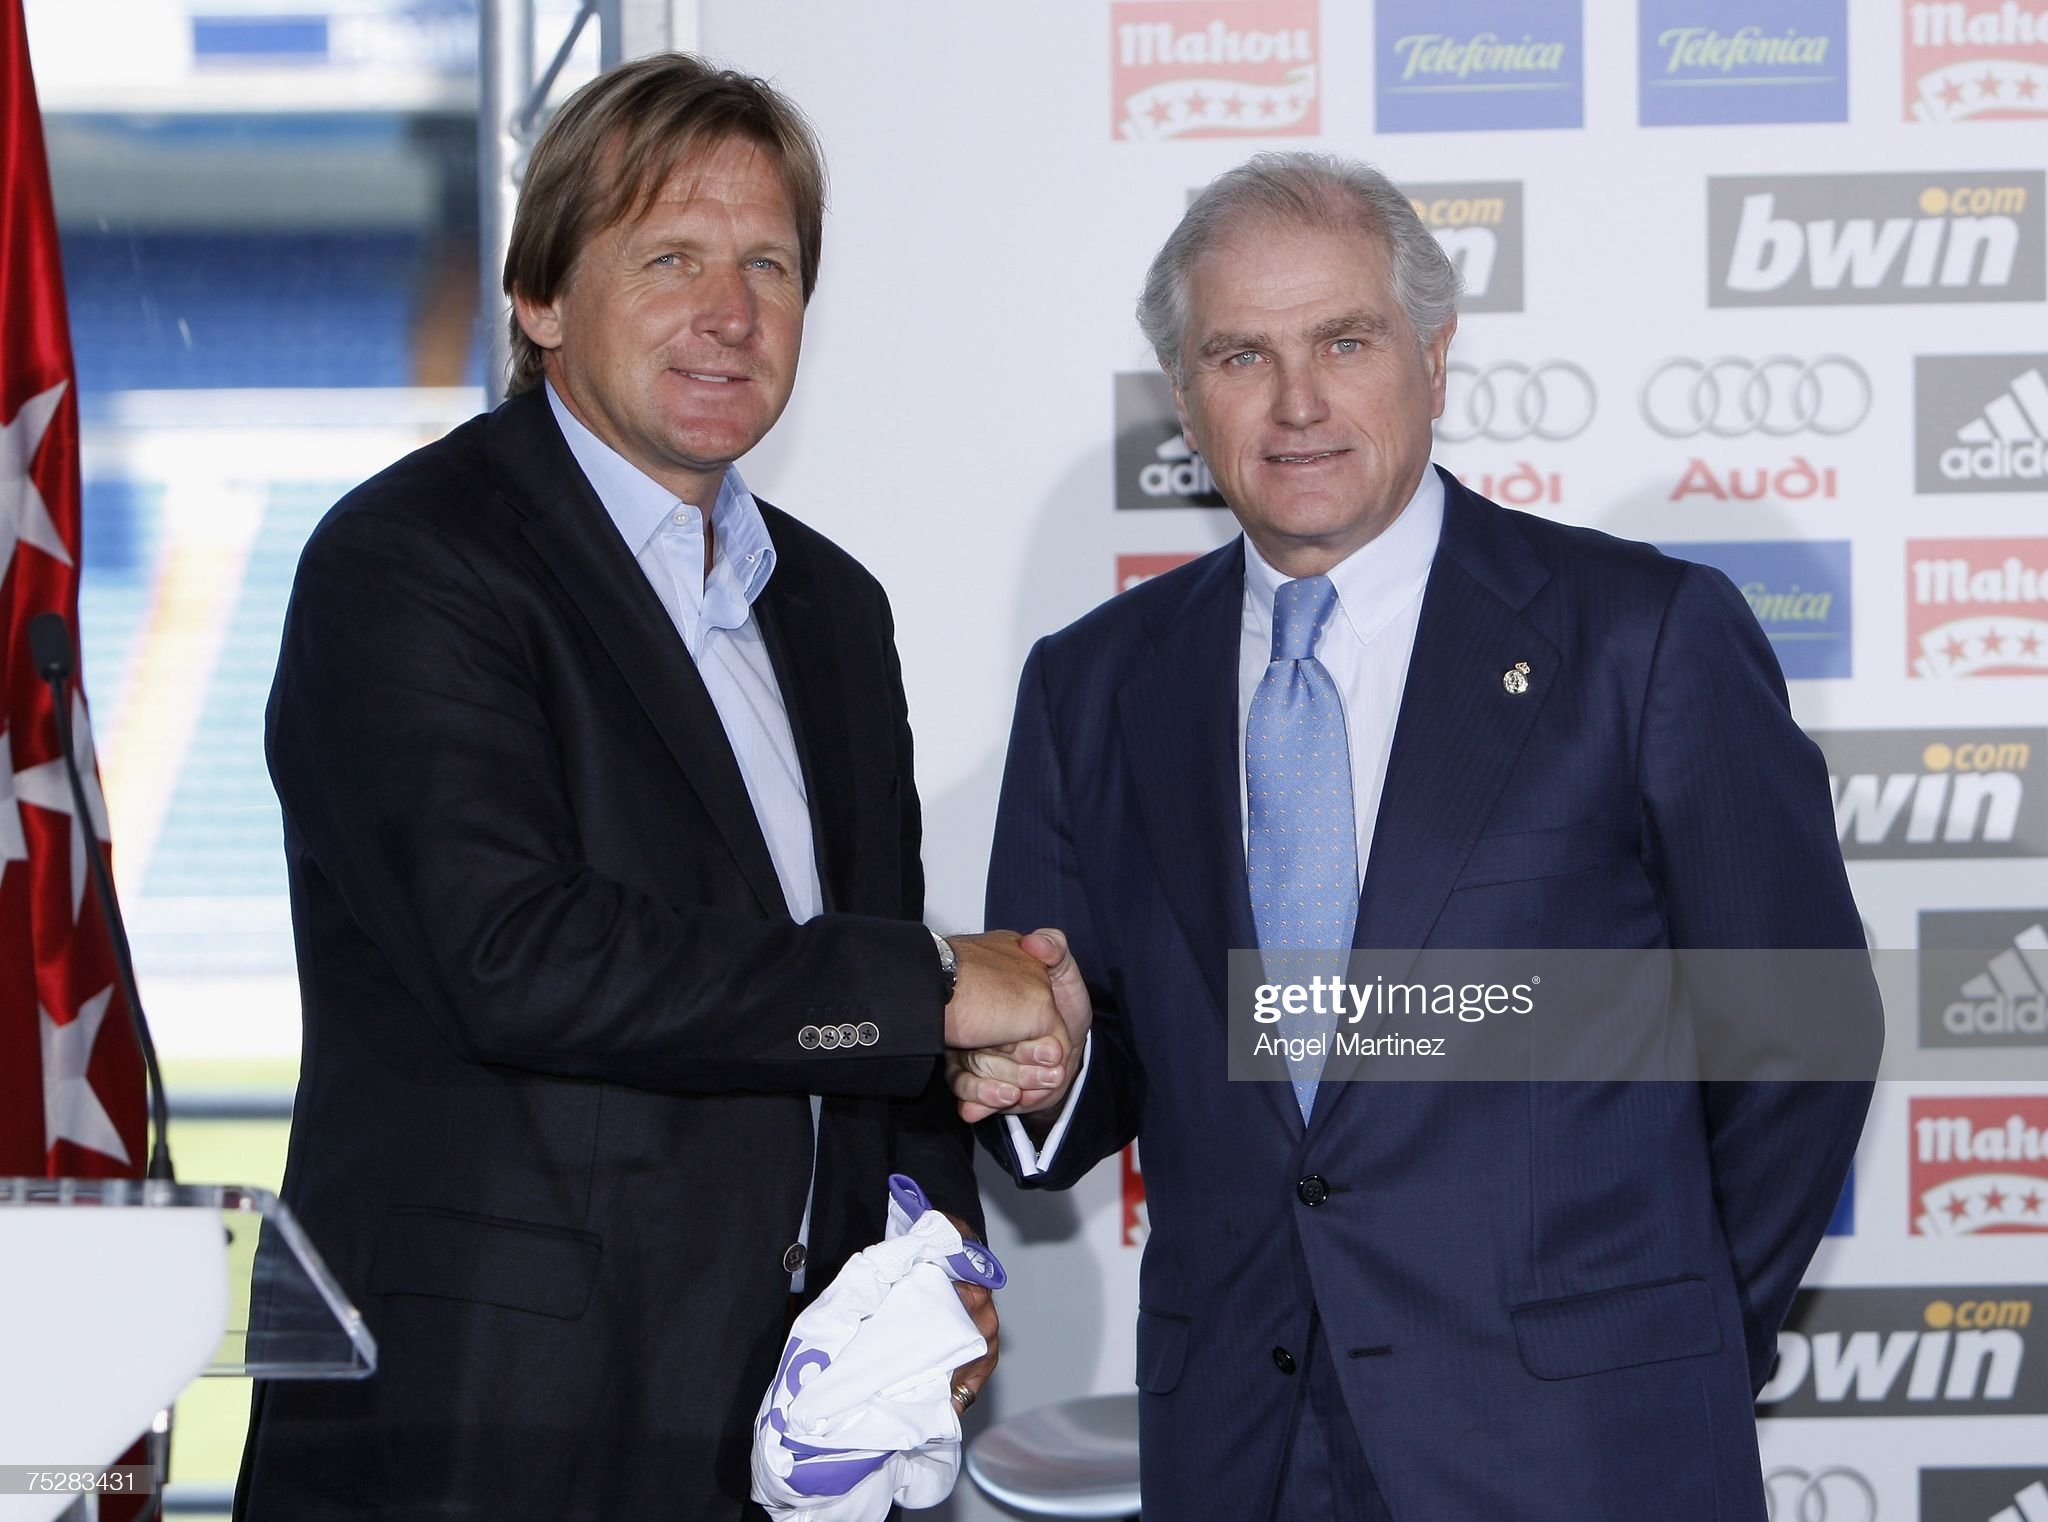 ¿Cuánto mide Ramón Calderón? New-coach-bernd-schuster-and-president-ramon-calderon-of-real-madrid-picture-id75283431?s=2048x2048